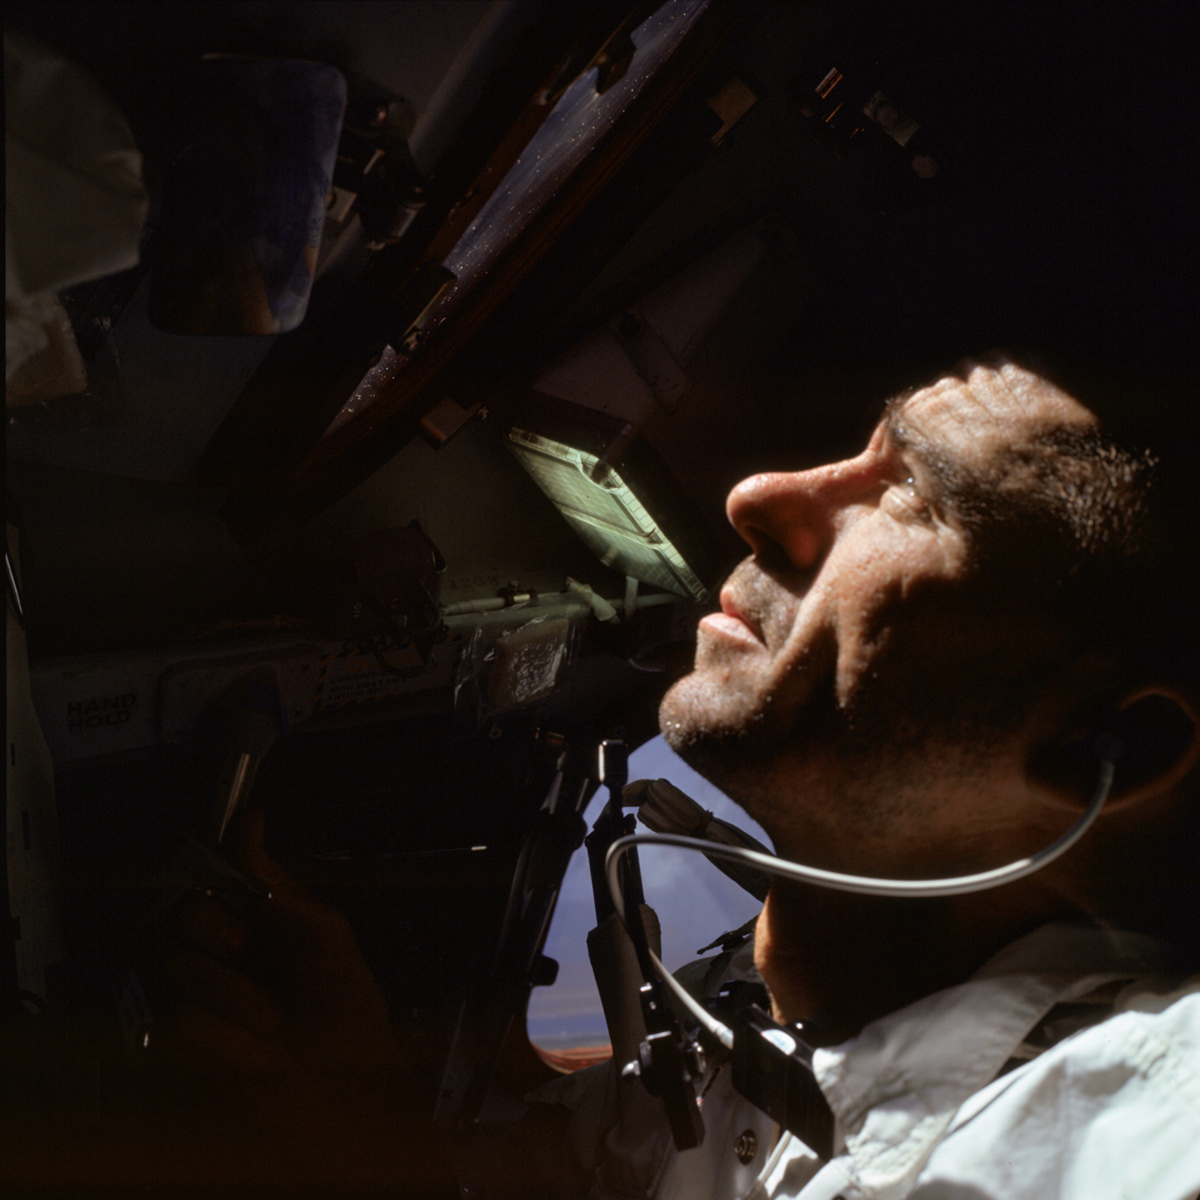 Man inside spacecraft, looking up